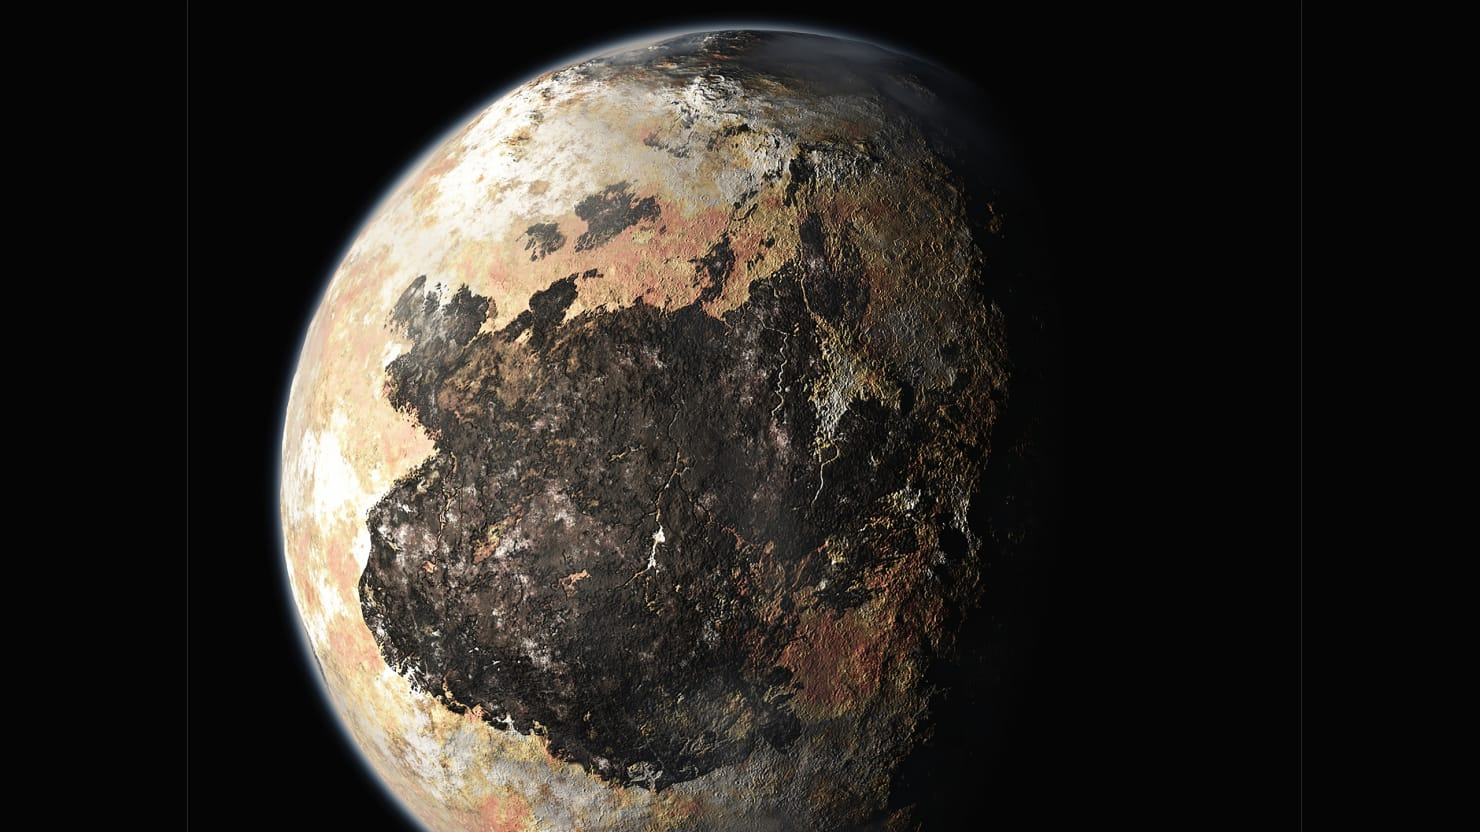 Pluto and Other Truly Epic Space Photos